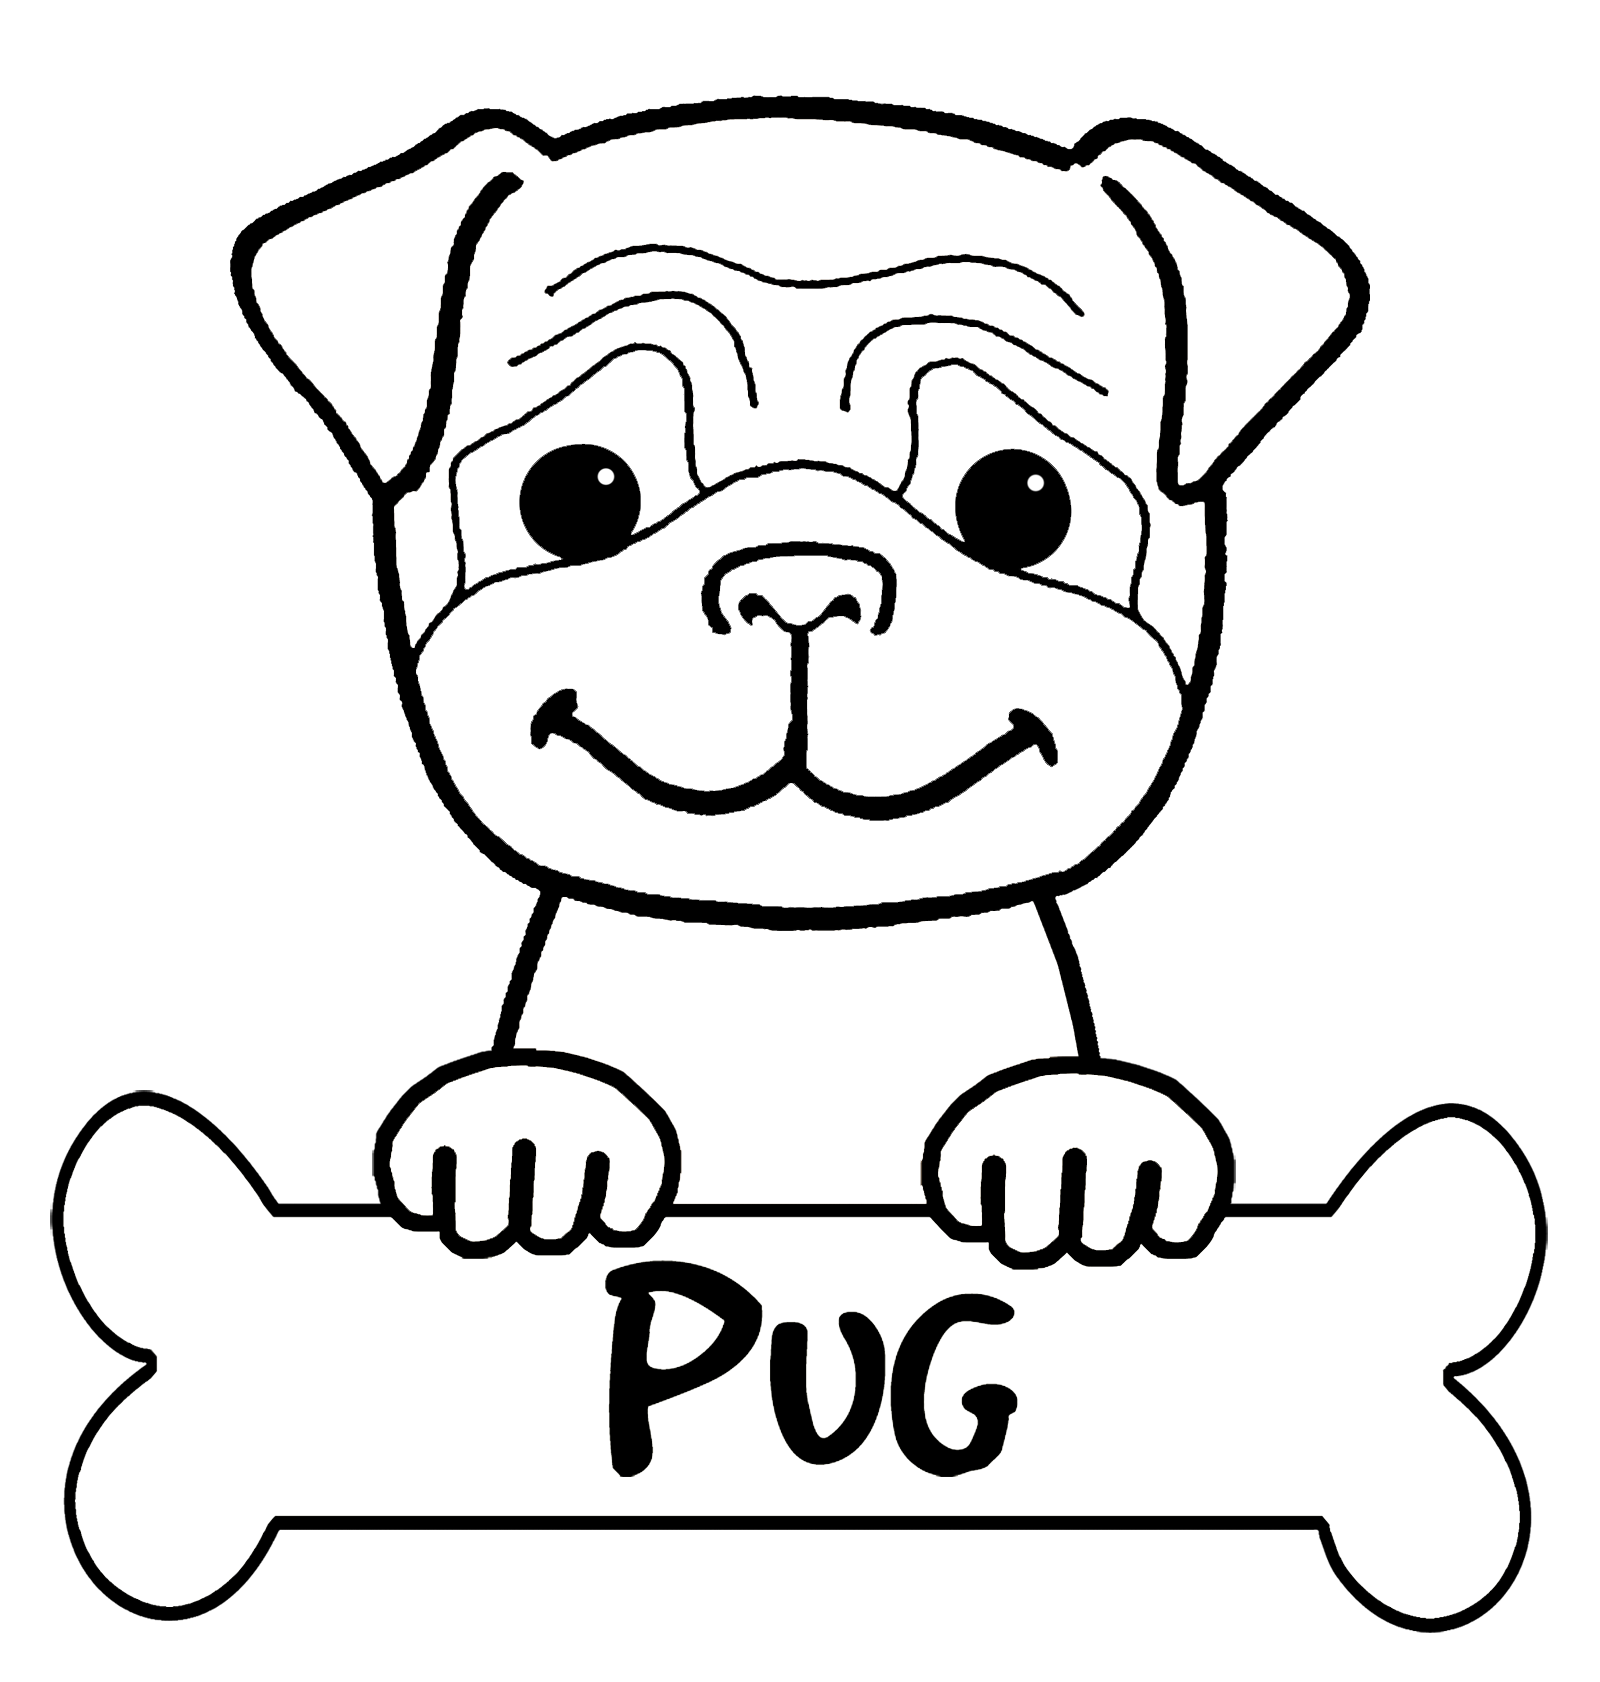 baby dog dog coloring pages pug coloring pages best coloring pages for kids dog pages dog baby coloring